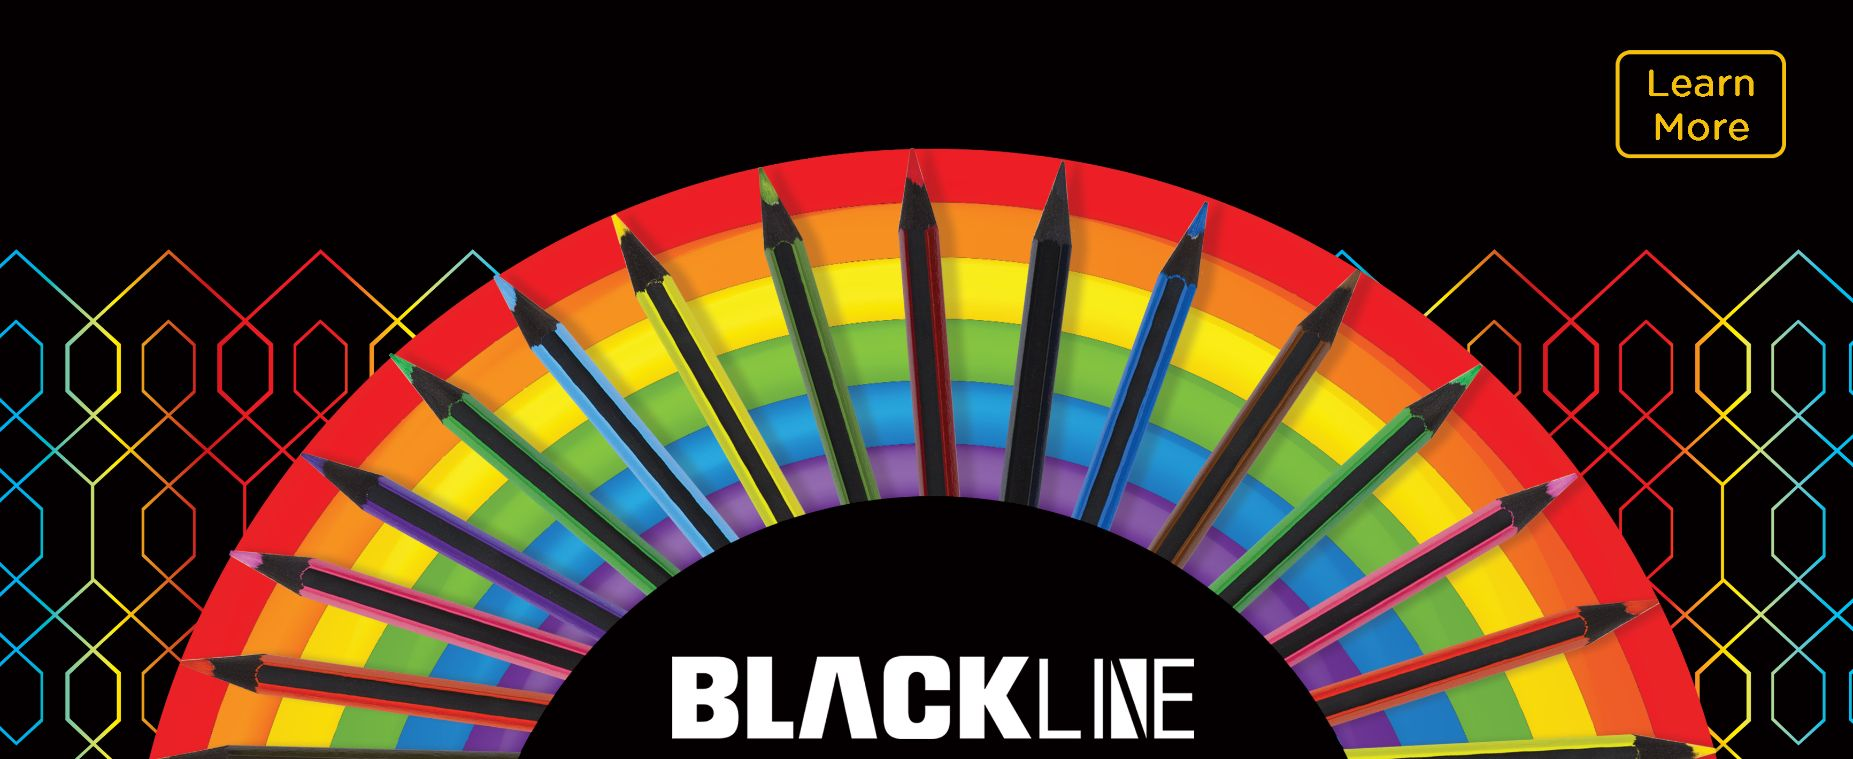 Blackline Coloring Pencils